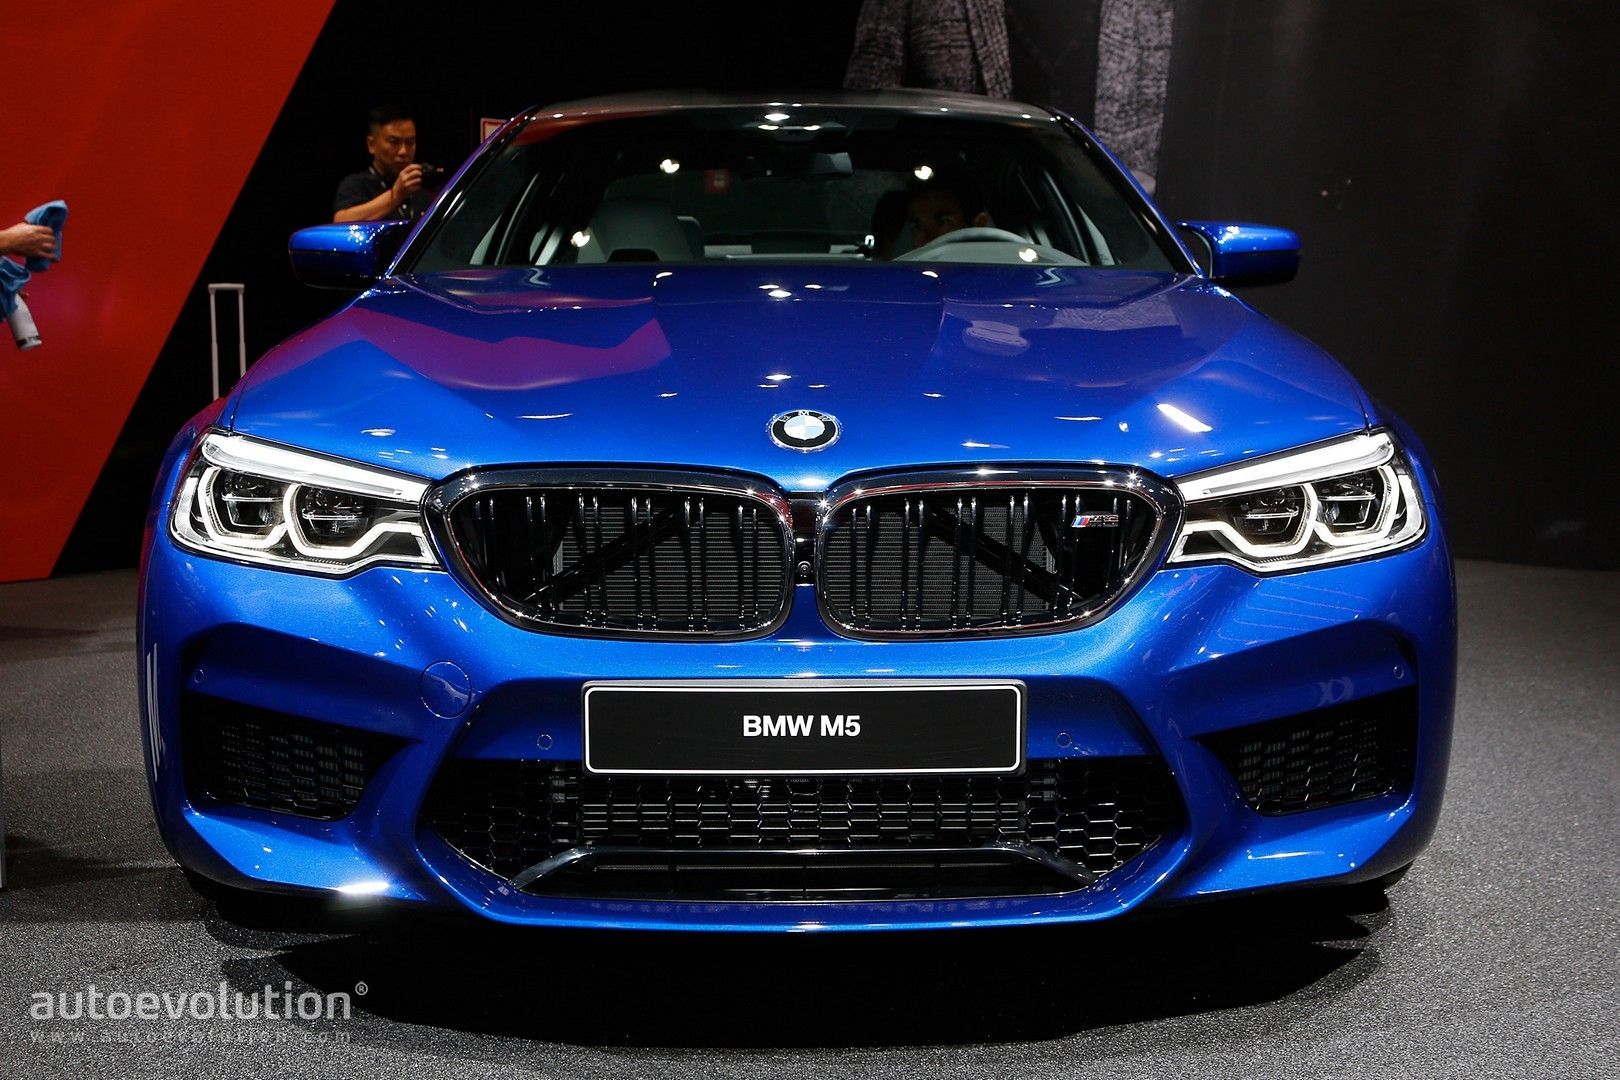 2018 Bmw M5 Flaunts 600 Hp Awd And Frozen Red Paint